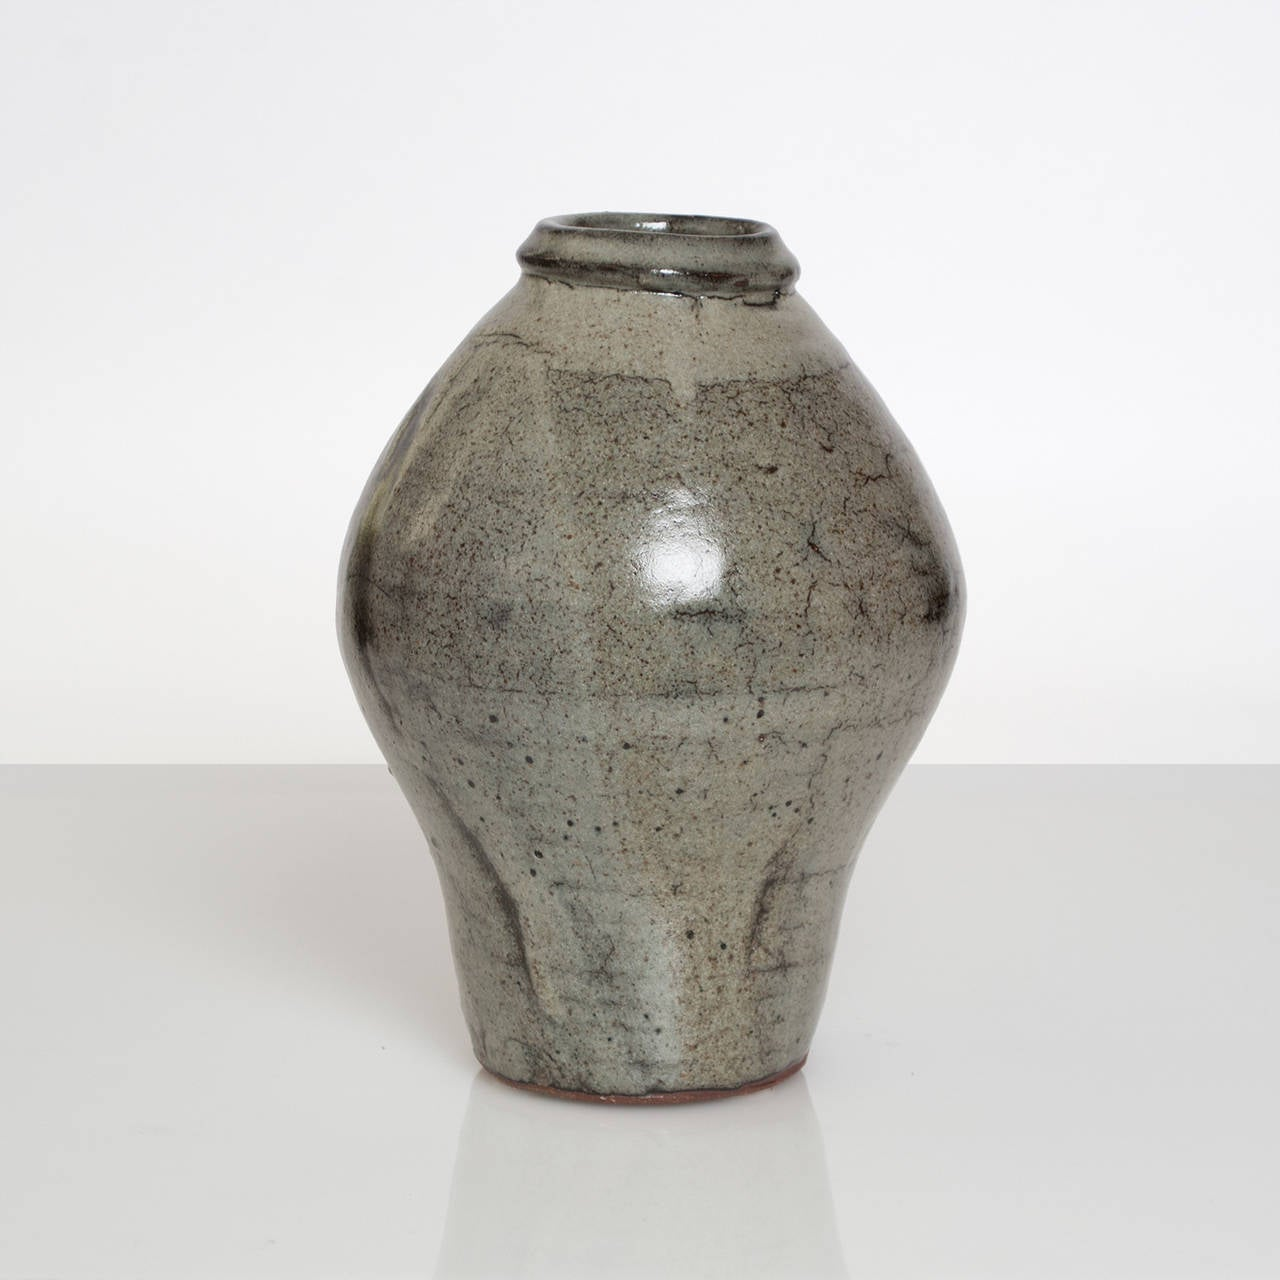 Trevor Corser ceramic vase from The Leach Pottery, St. Ives, England on small fish bowls cheap, small clocks cheap, small chairs cheap, small handbags cheap, small trophies cheap, small baskets cheap, small tables cheap,